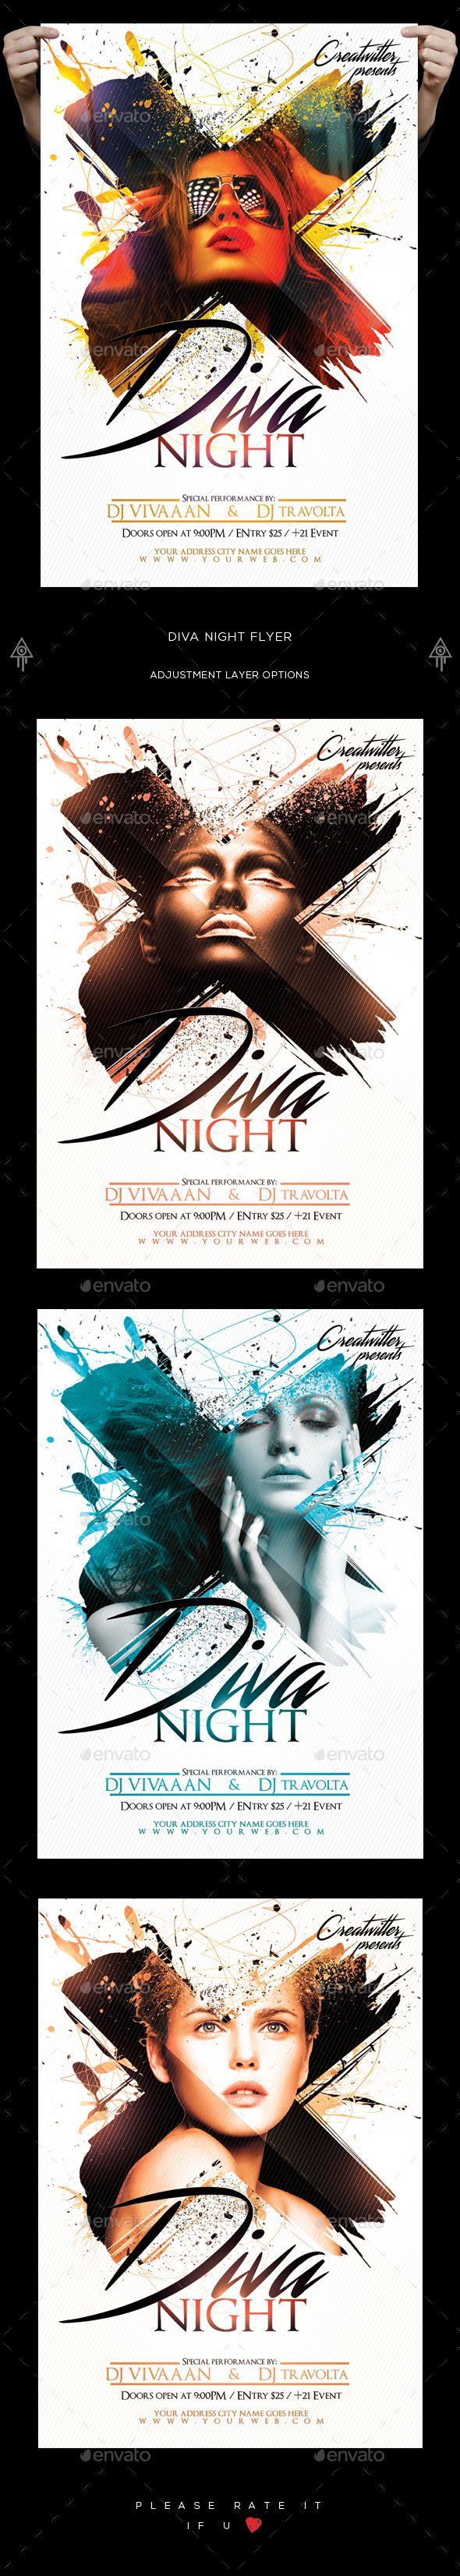 Diva Night Flyer  — PSD Template #vip #ladies night • Download ➝ https://graphicriver.net/item/diva-night-flyer/18329355?ref=pxcr